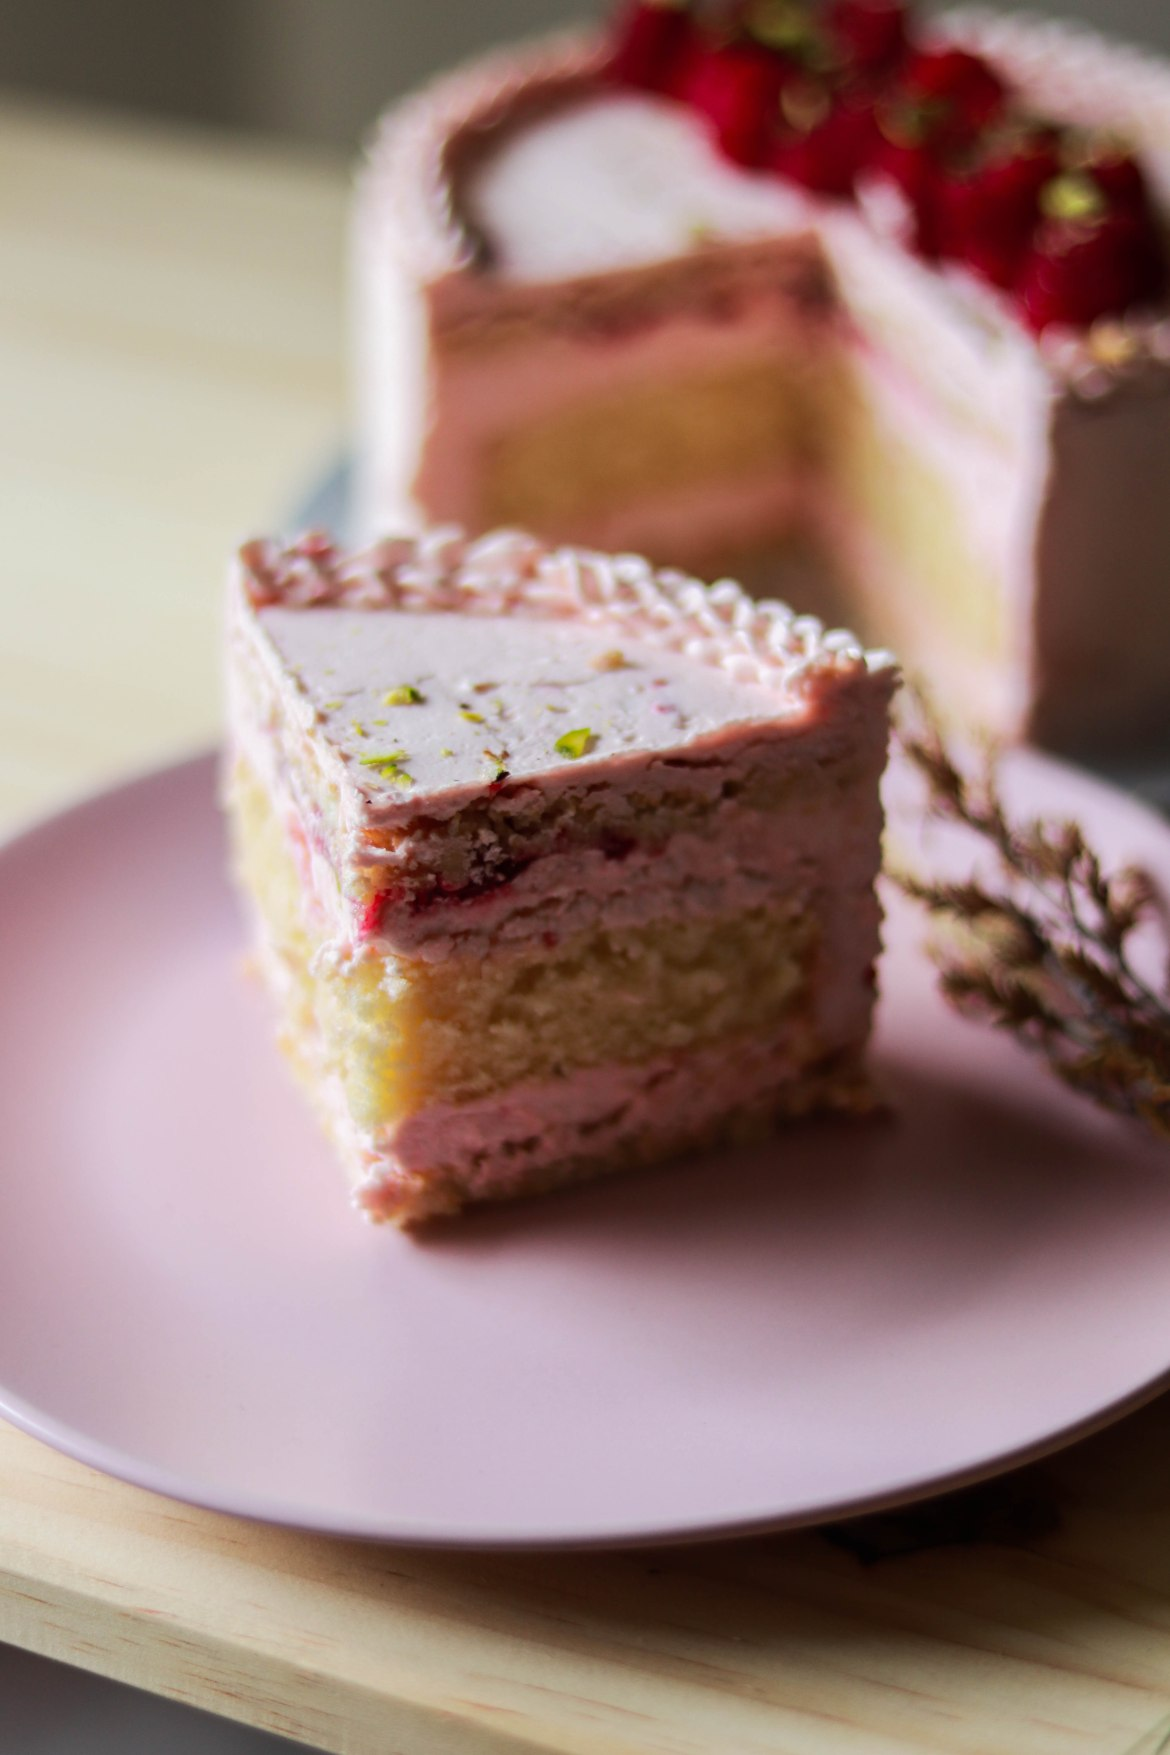 Zuger Kirsch Torte (with raspberry twist) 1